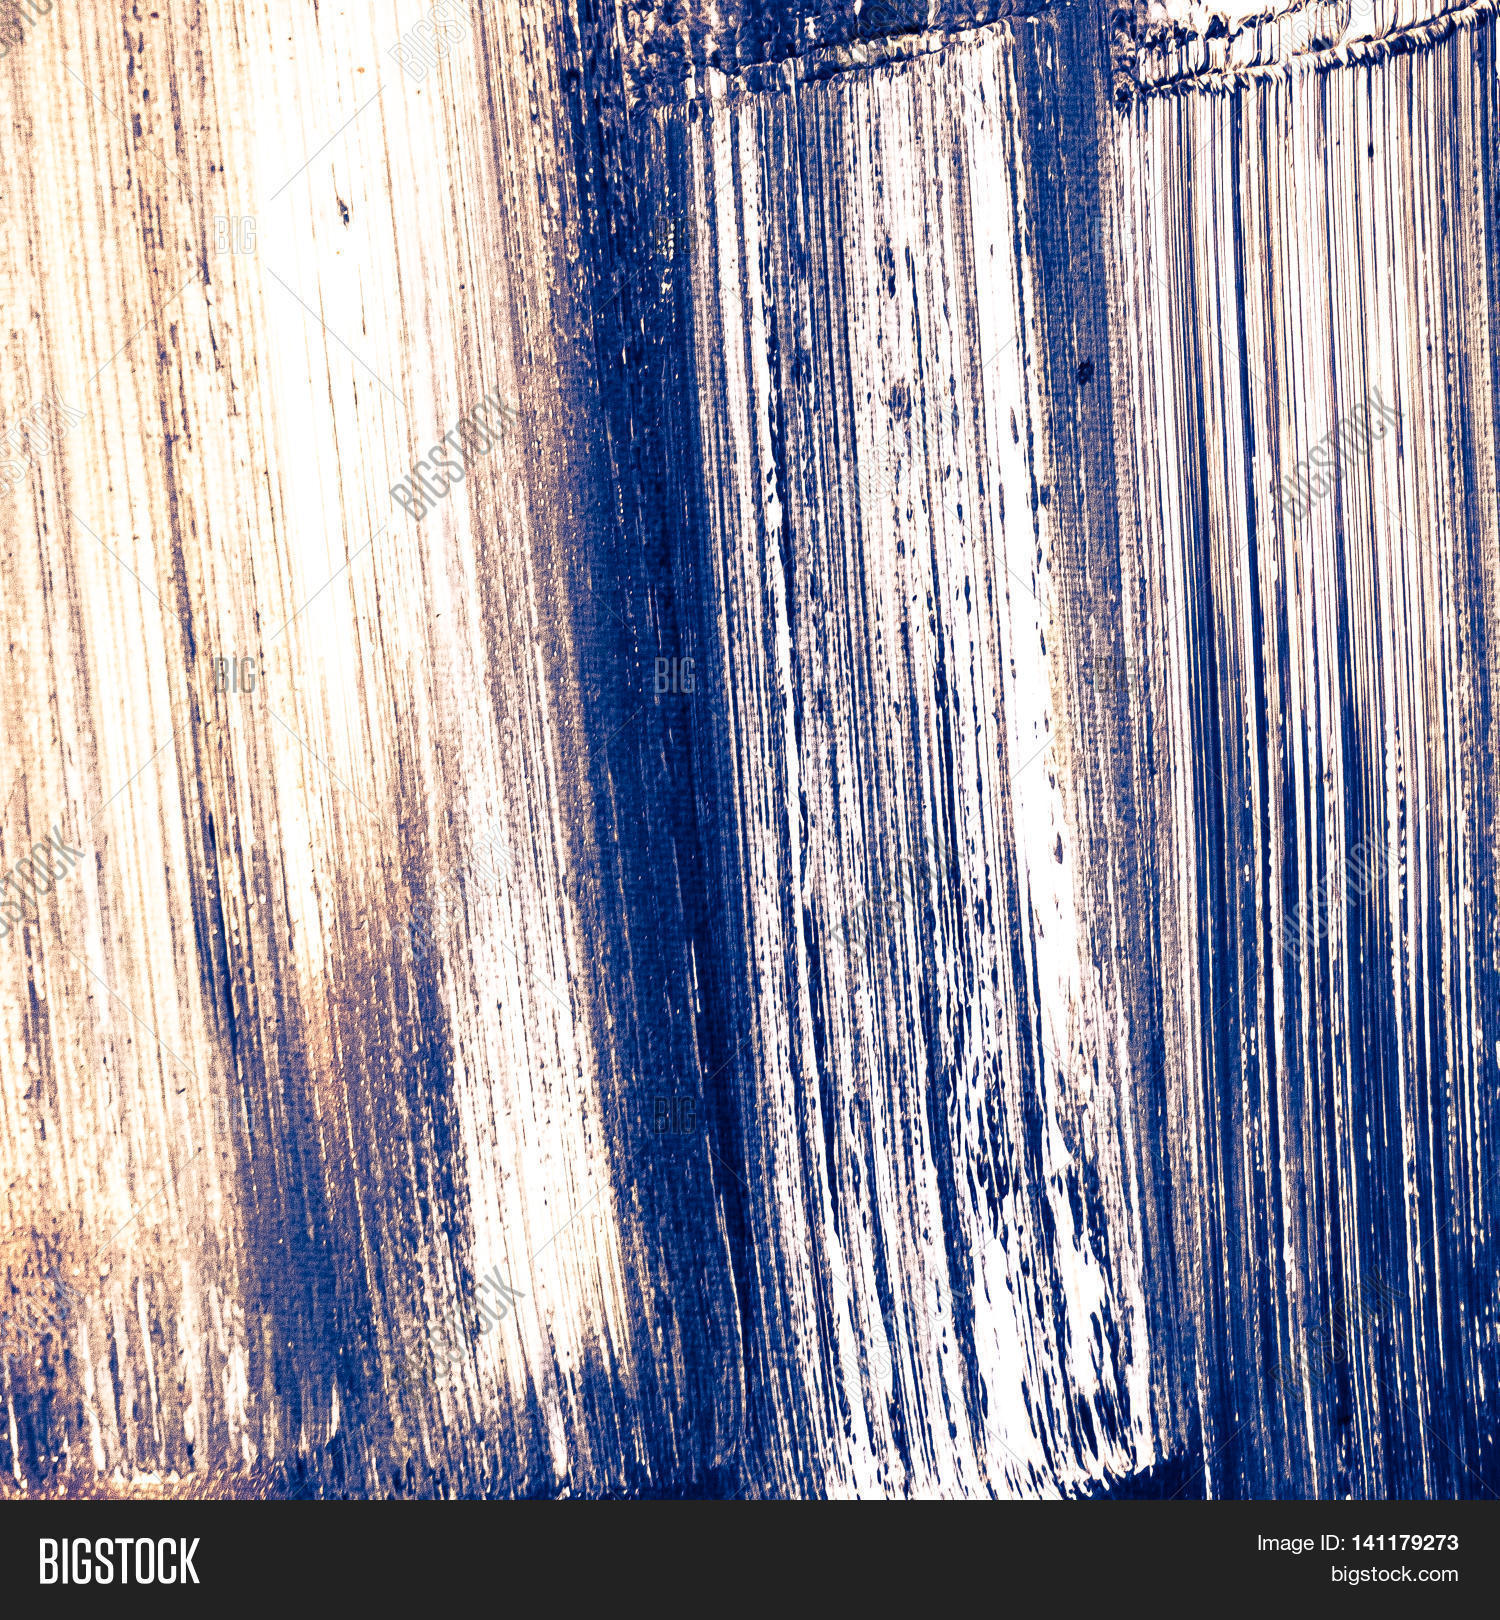 Oil Paint Texture Image Photo Free Trial Bigstock